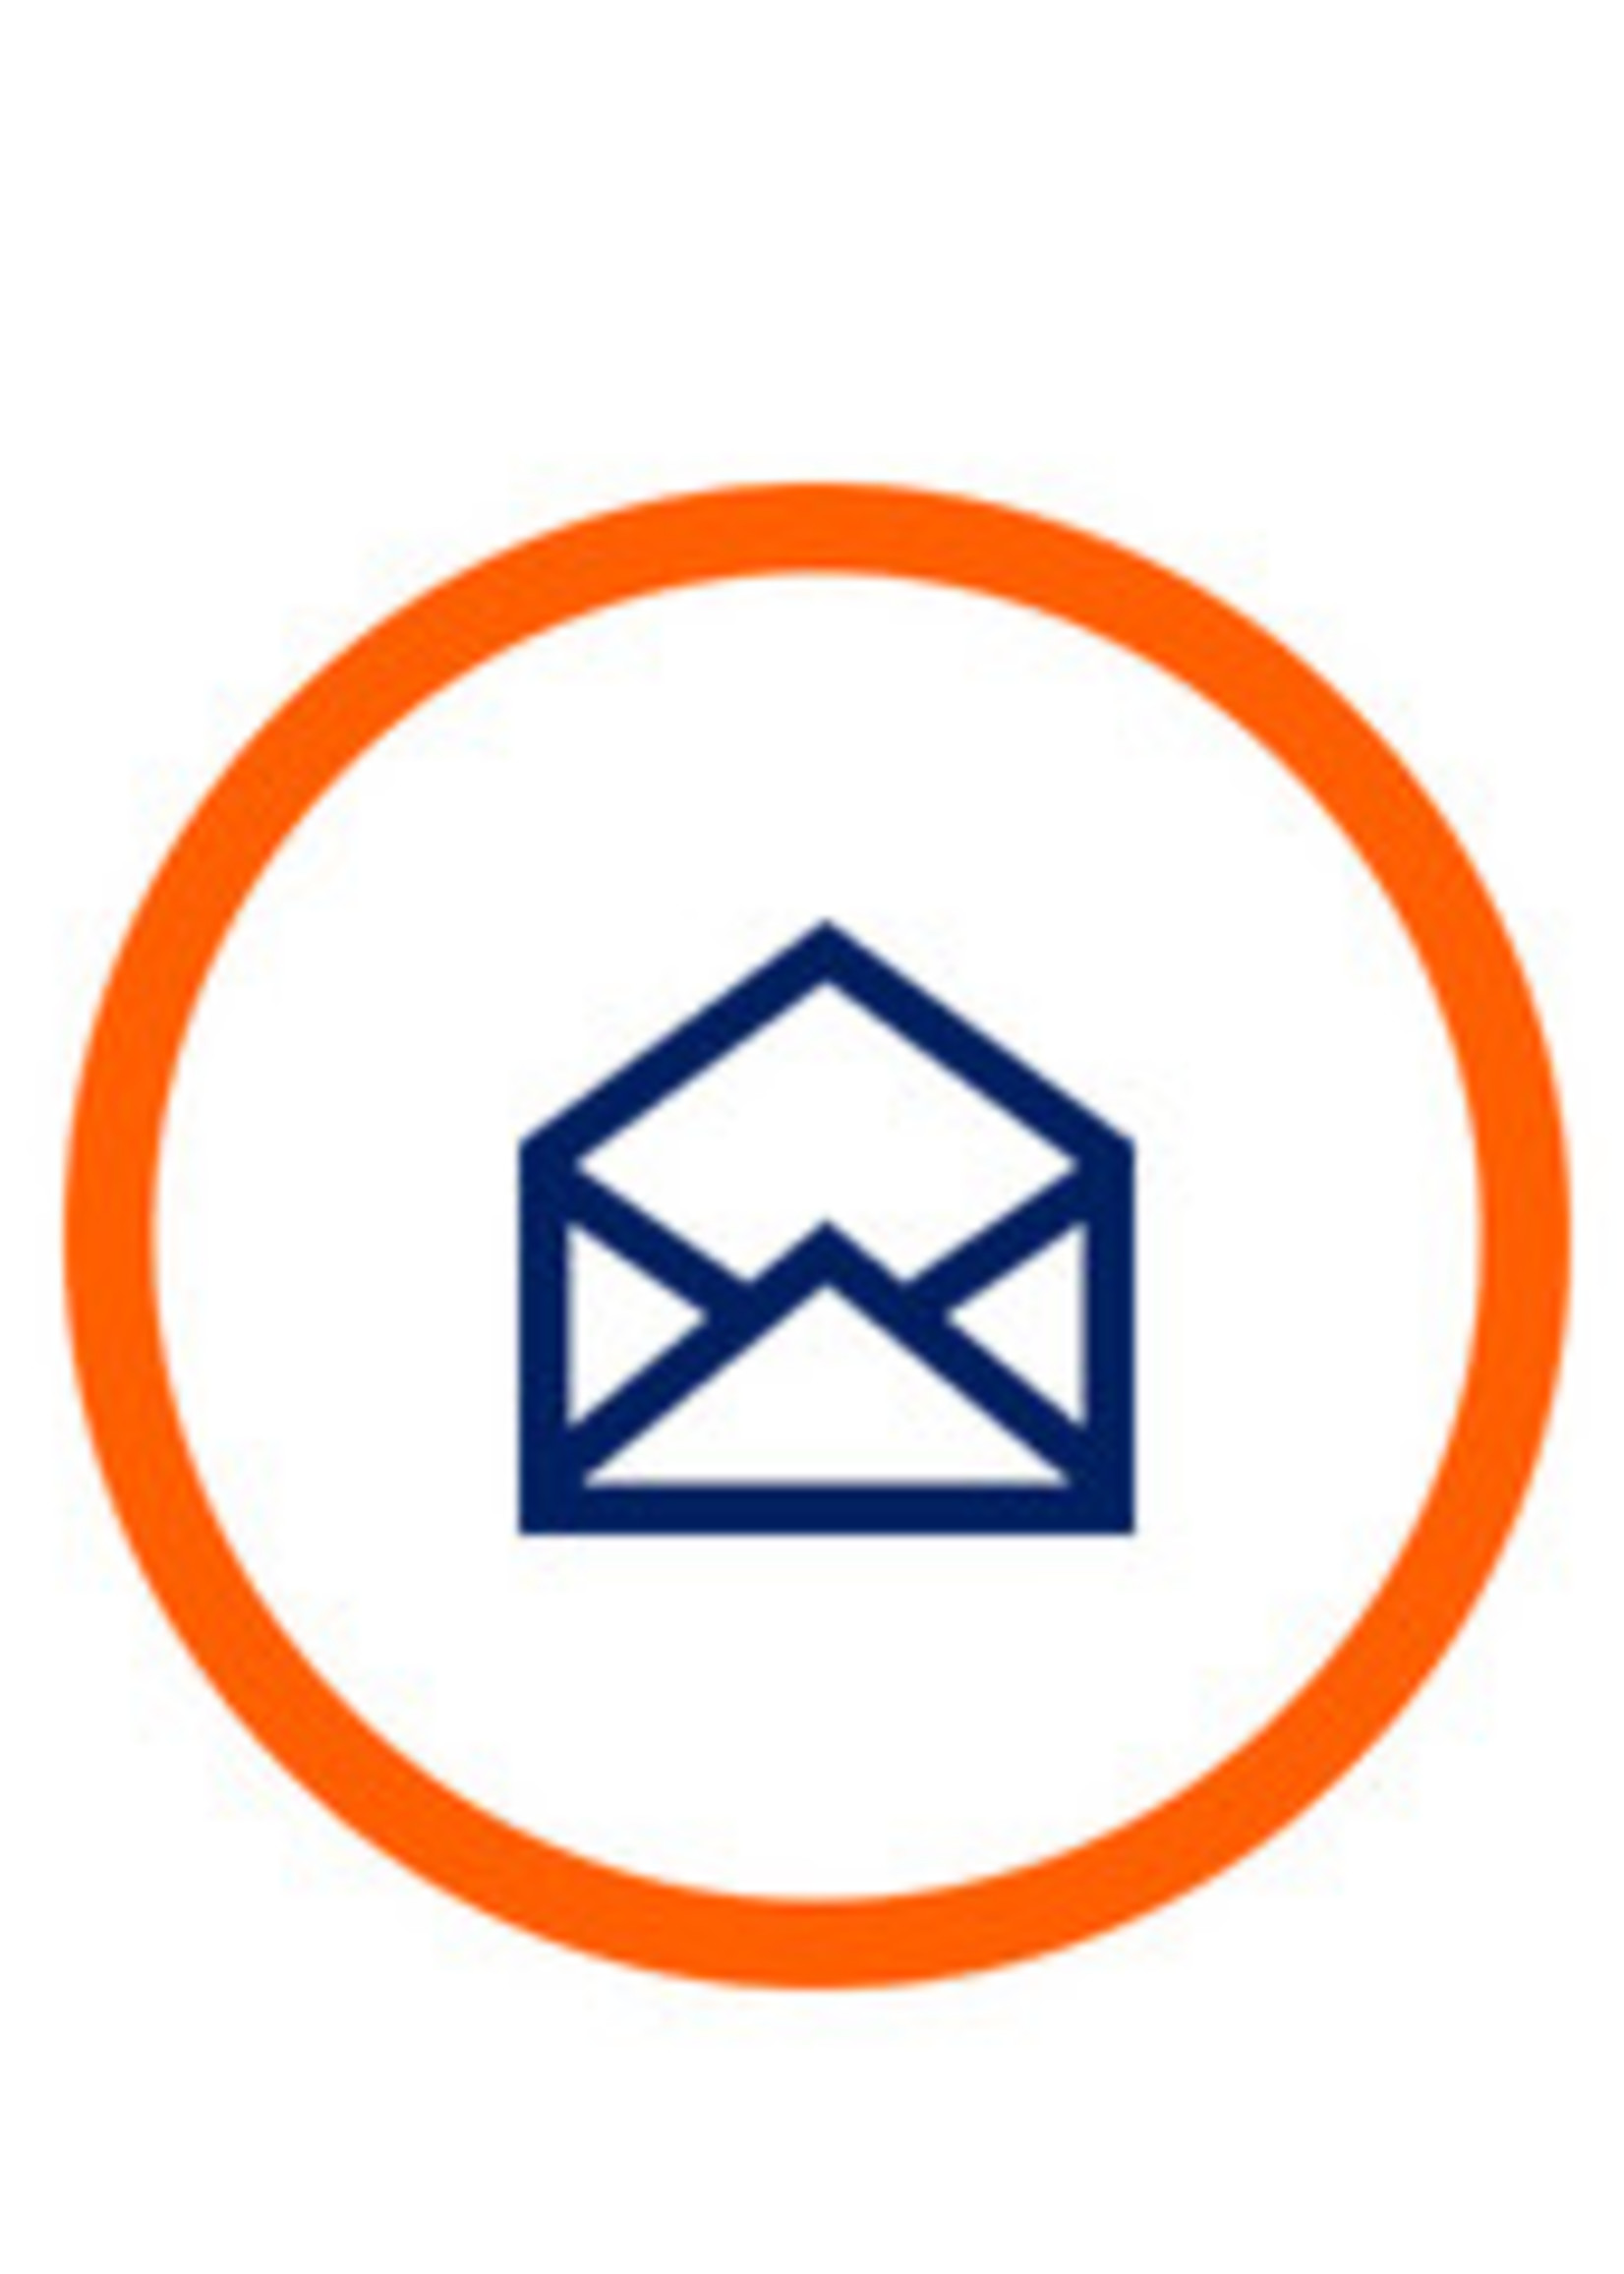 Support by email